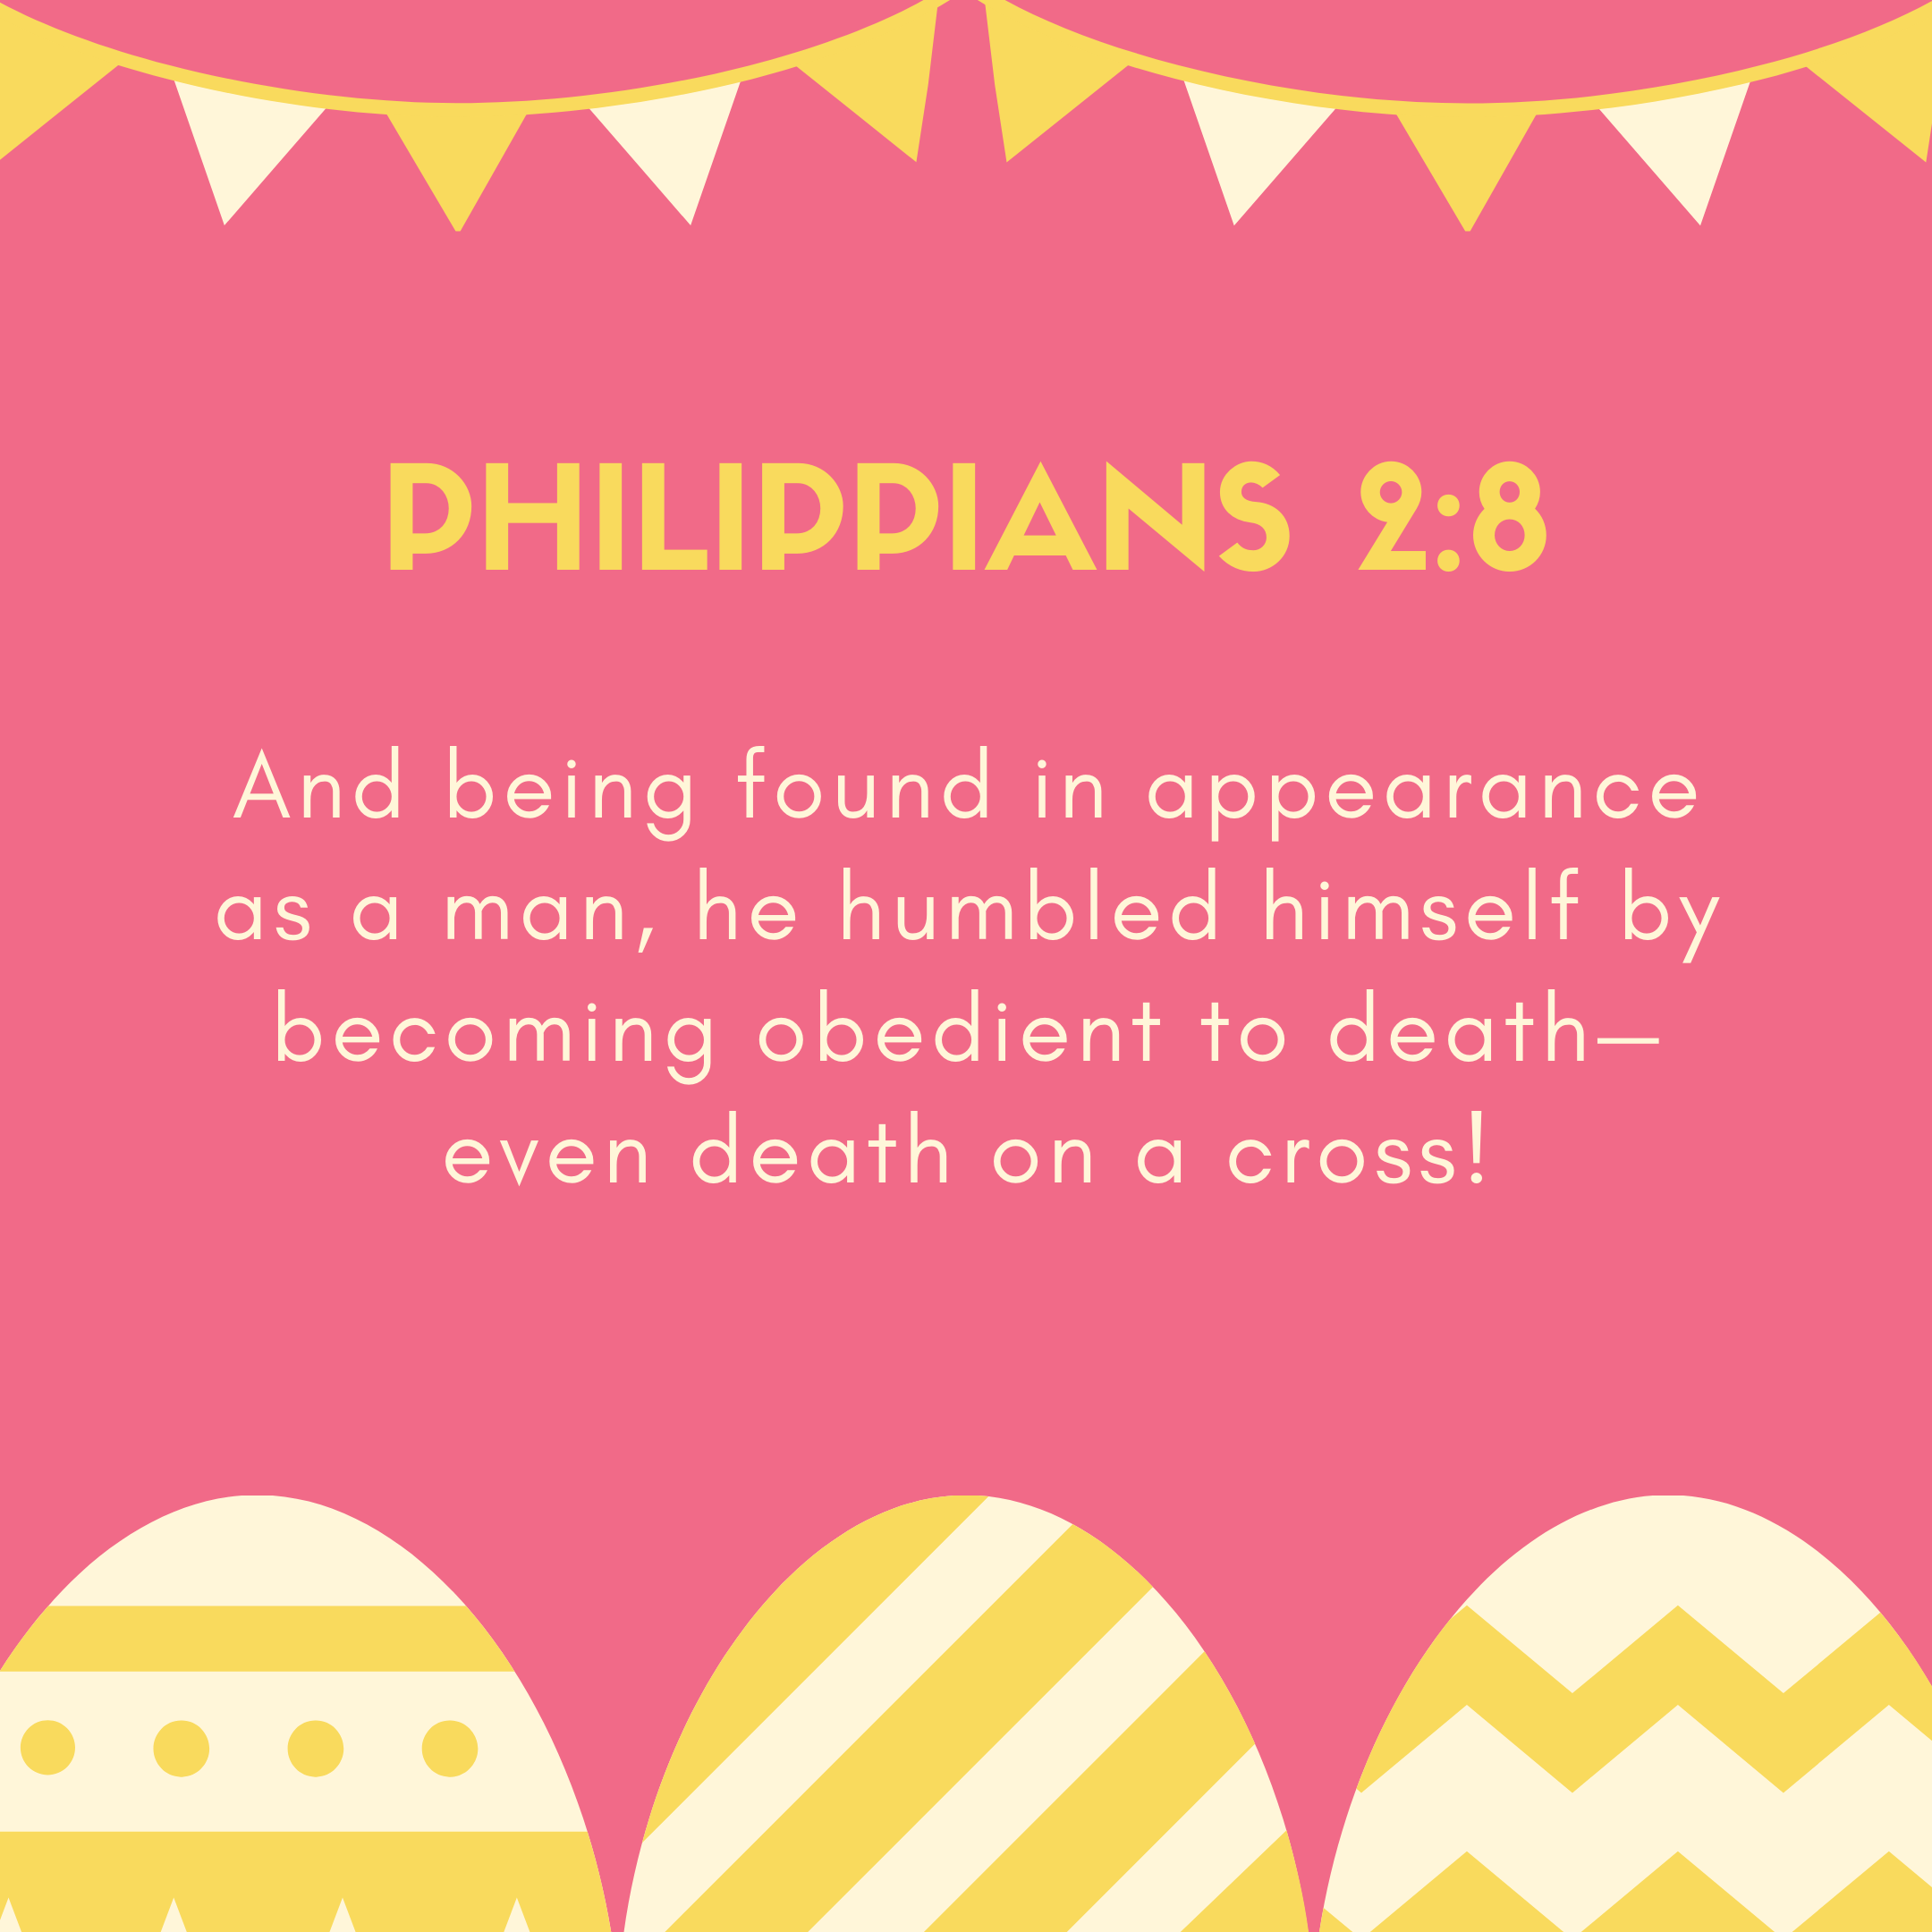 Philippians 2:8 And being found in appearance as a man, he humbled himself by becoming obedient to death— even death on a cross!